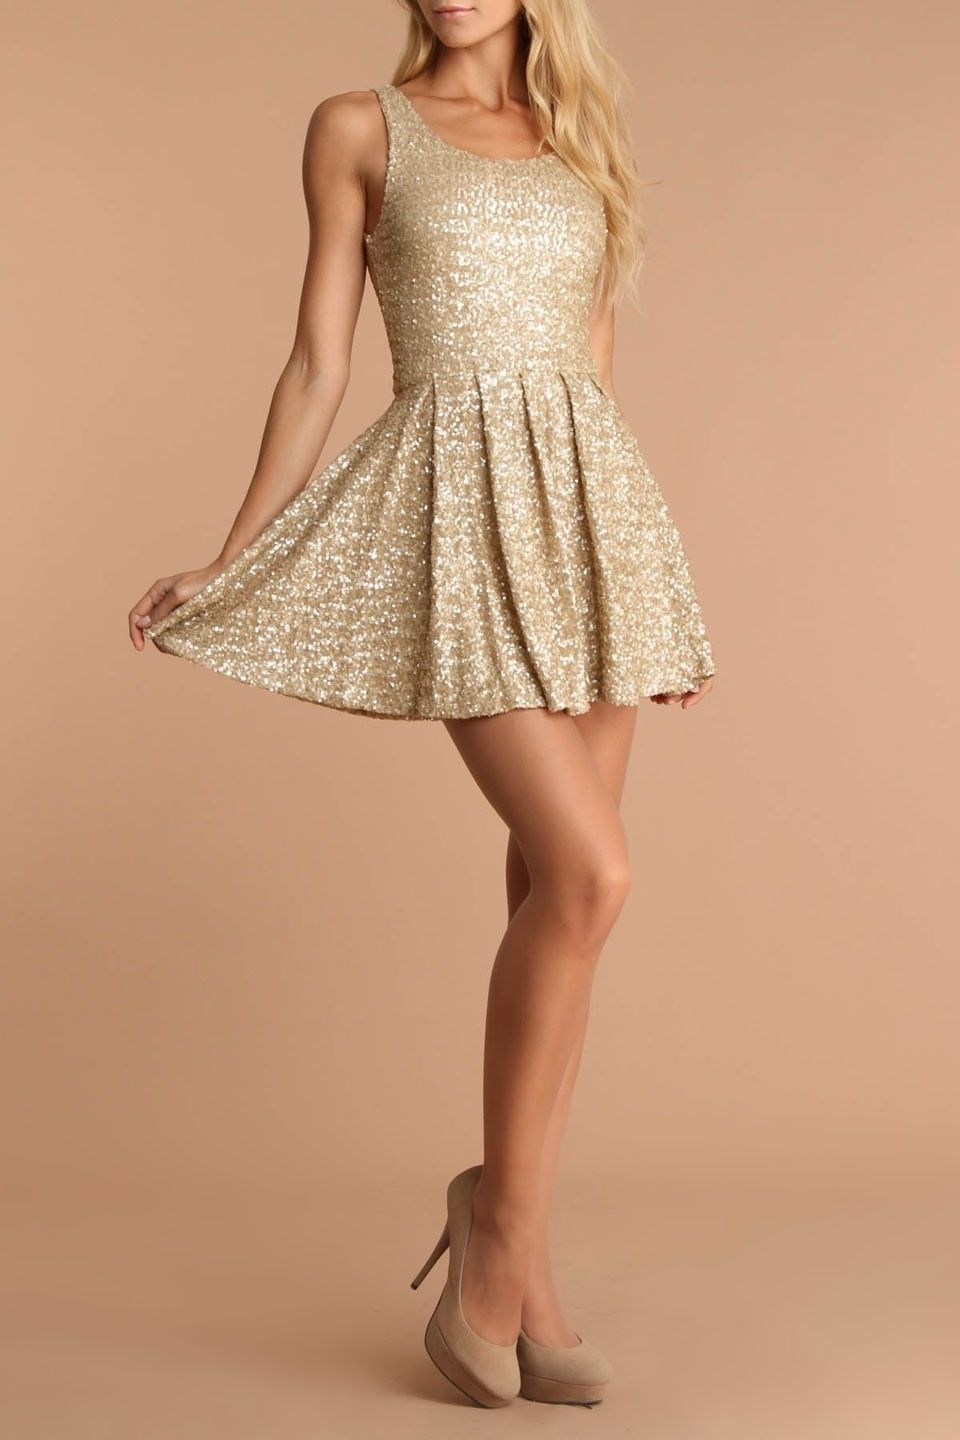 Sweet sexy dress style inspirations pinterest legs nude shoes